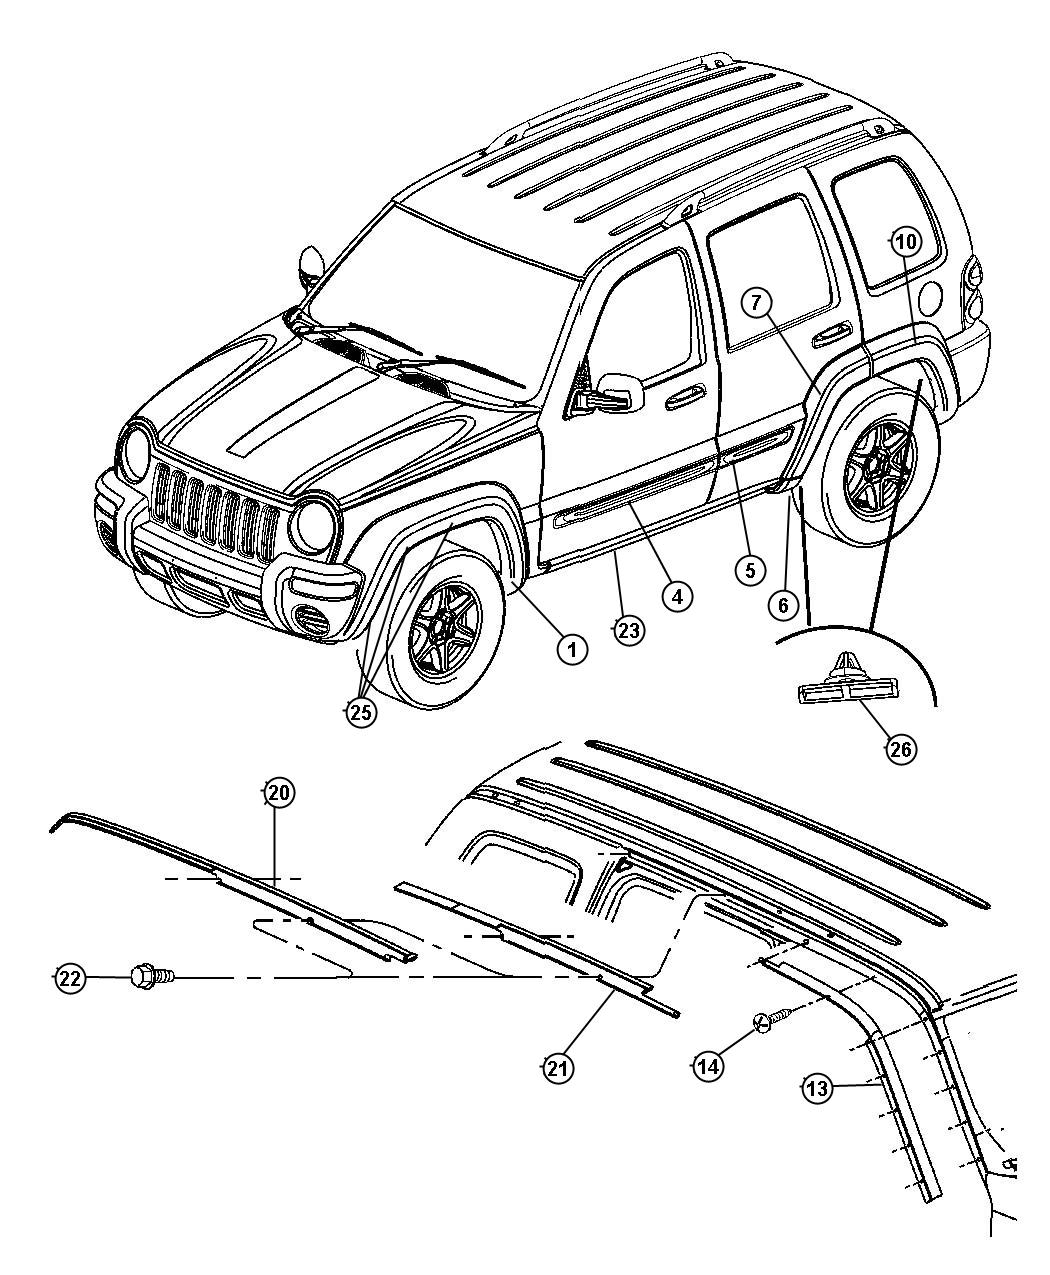 2002 jeep liberty parts diagram fujitsu mini split wiring 2007 kj replacement quadratec